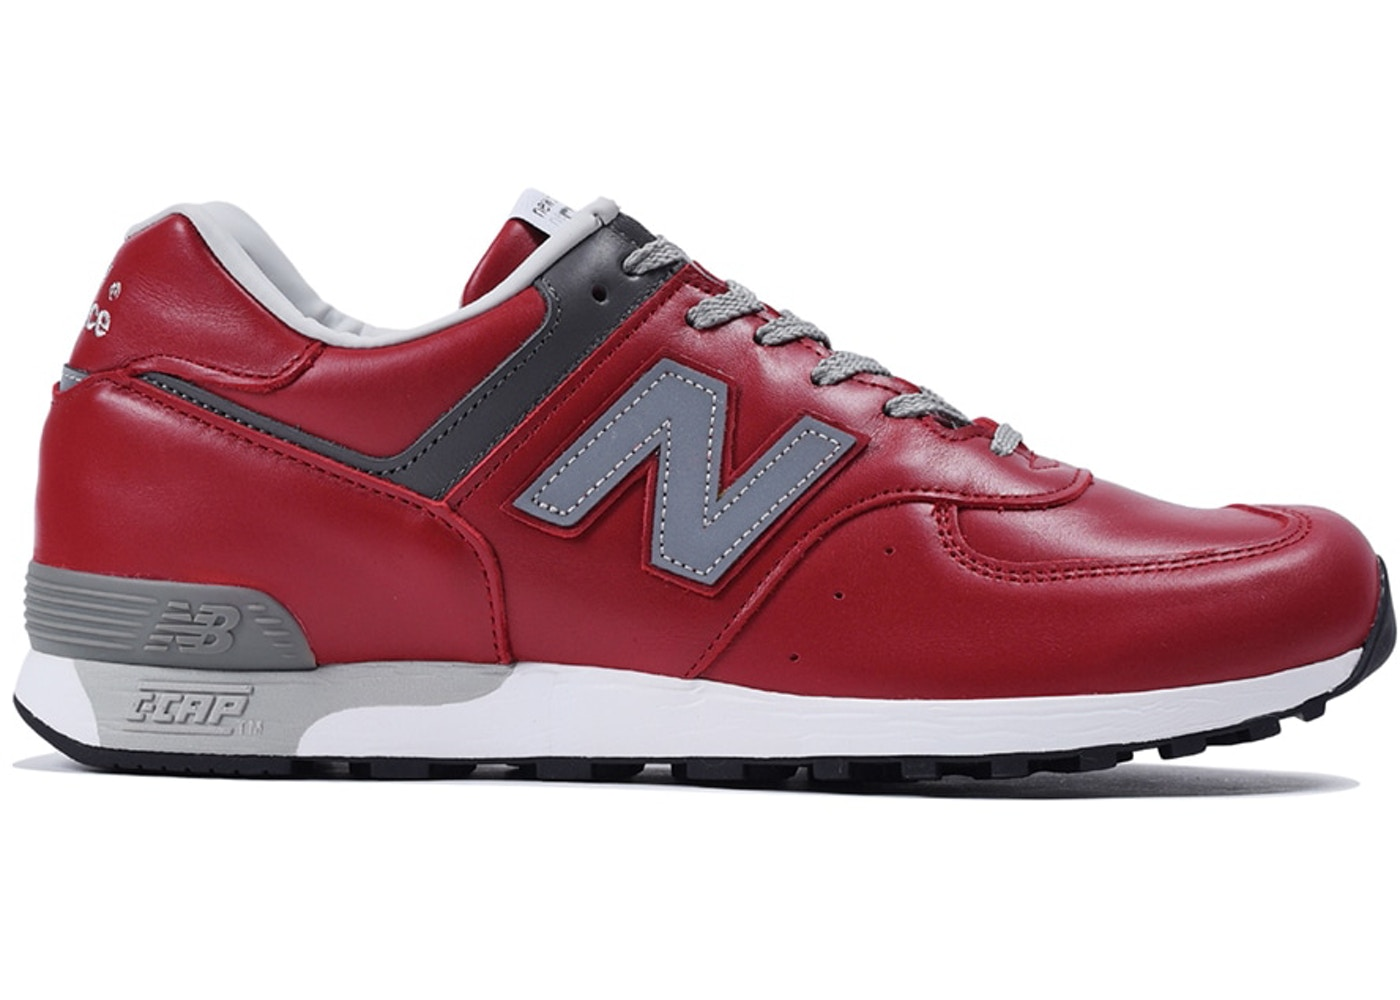 New Balance 576 Made in UK Red - M576RED